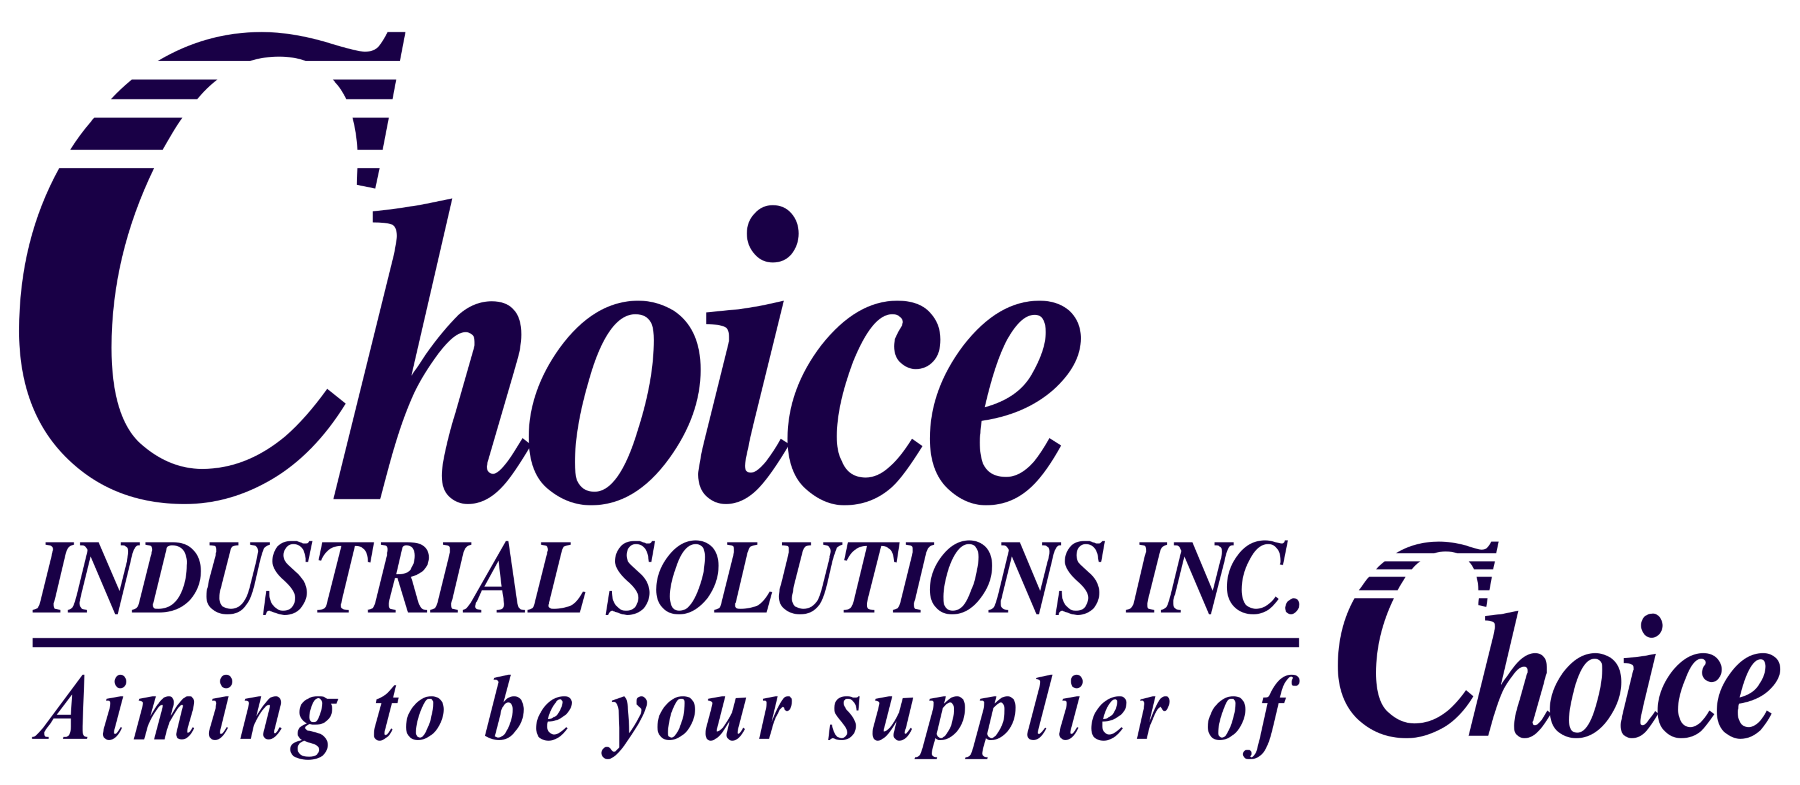 Choice Industrial Solutions, Inc.